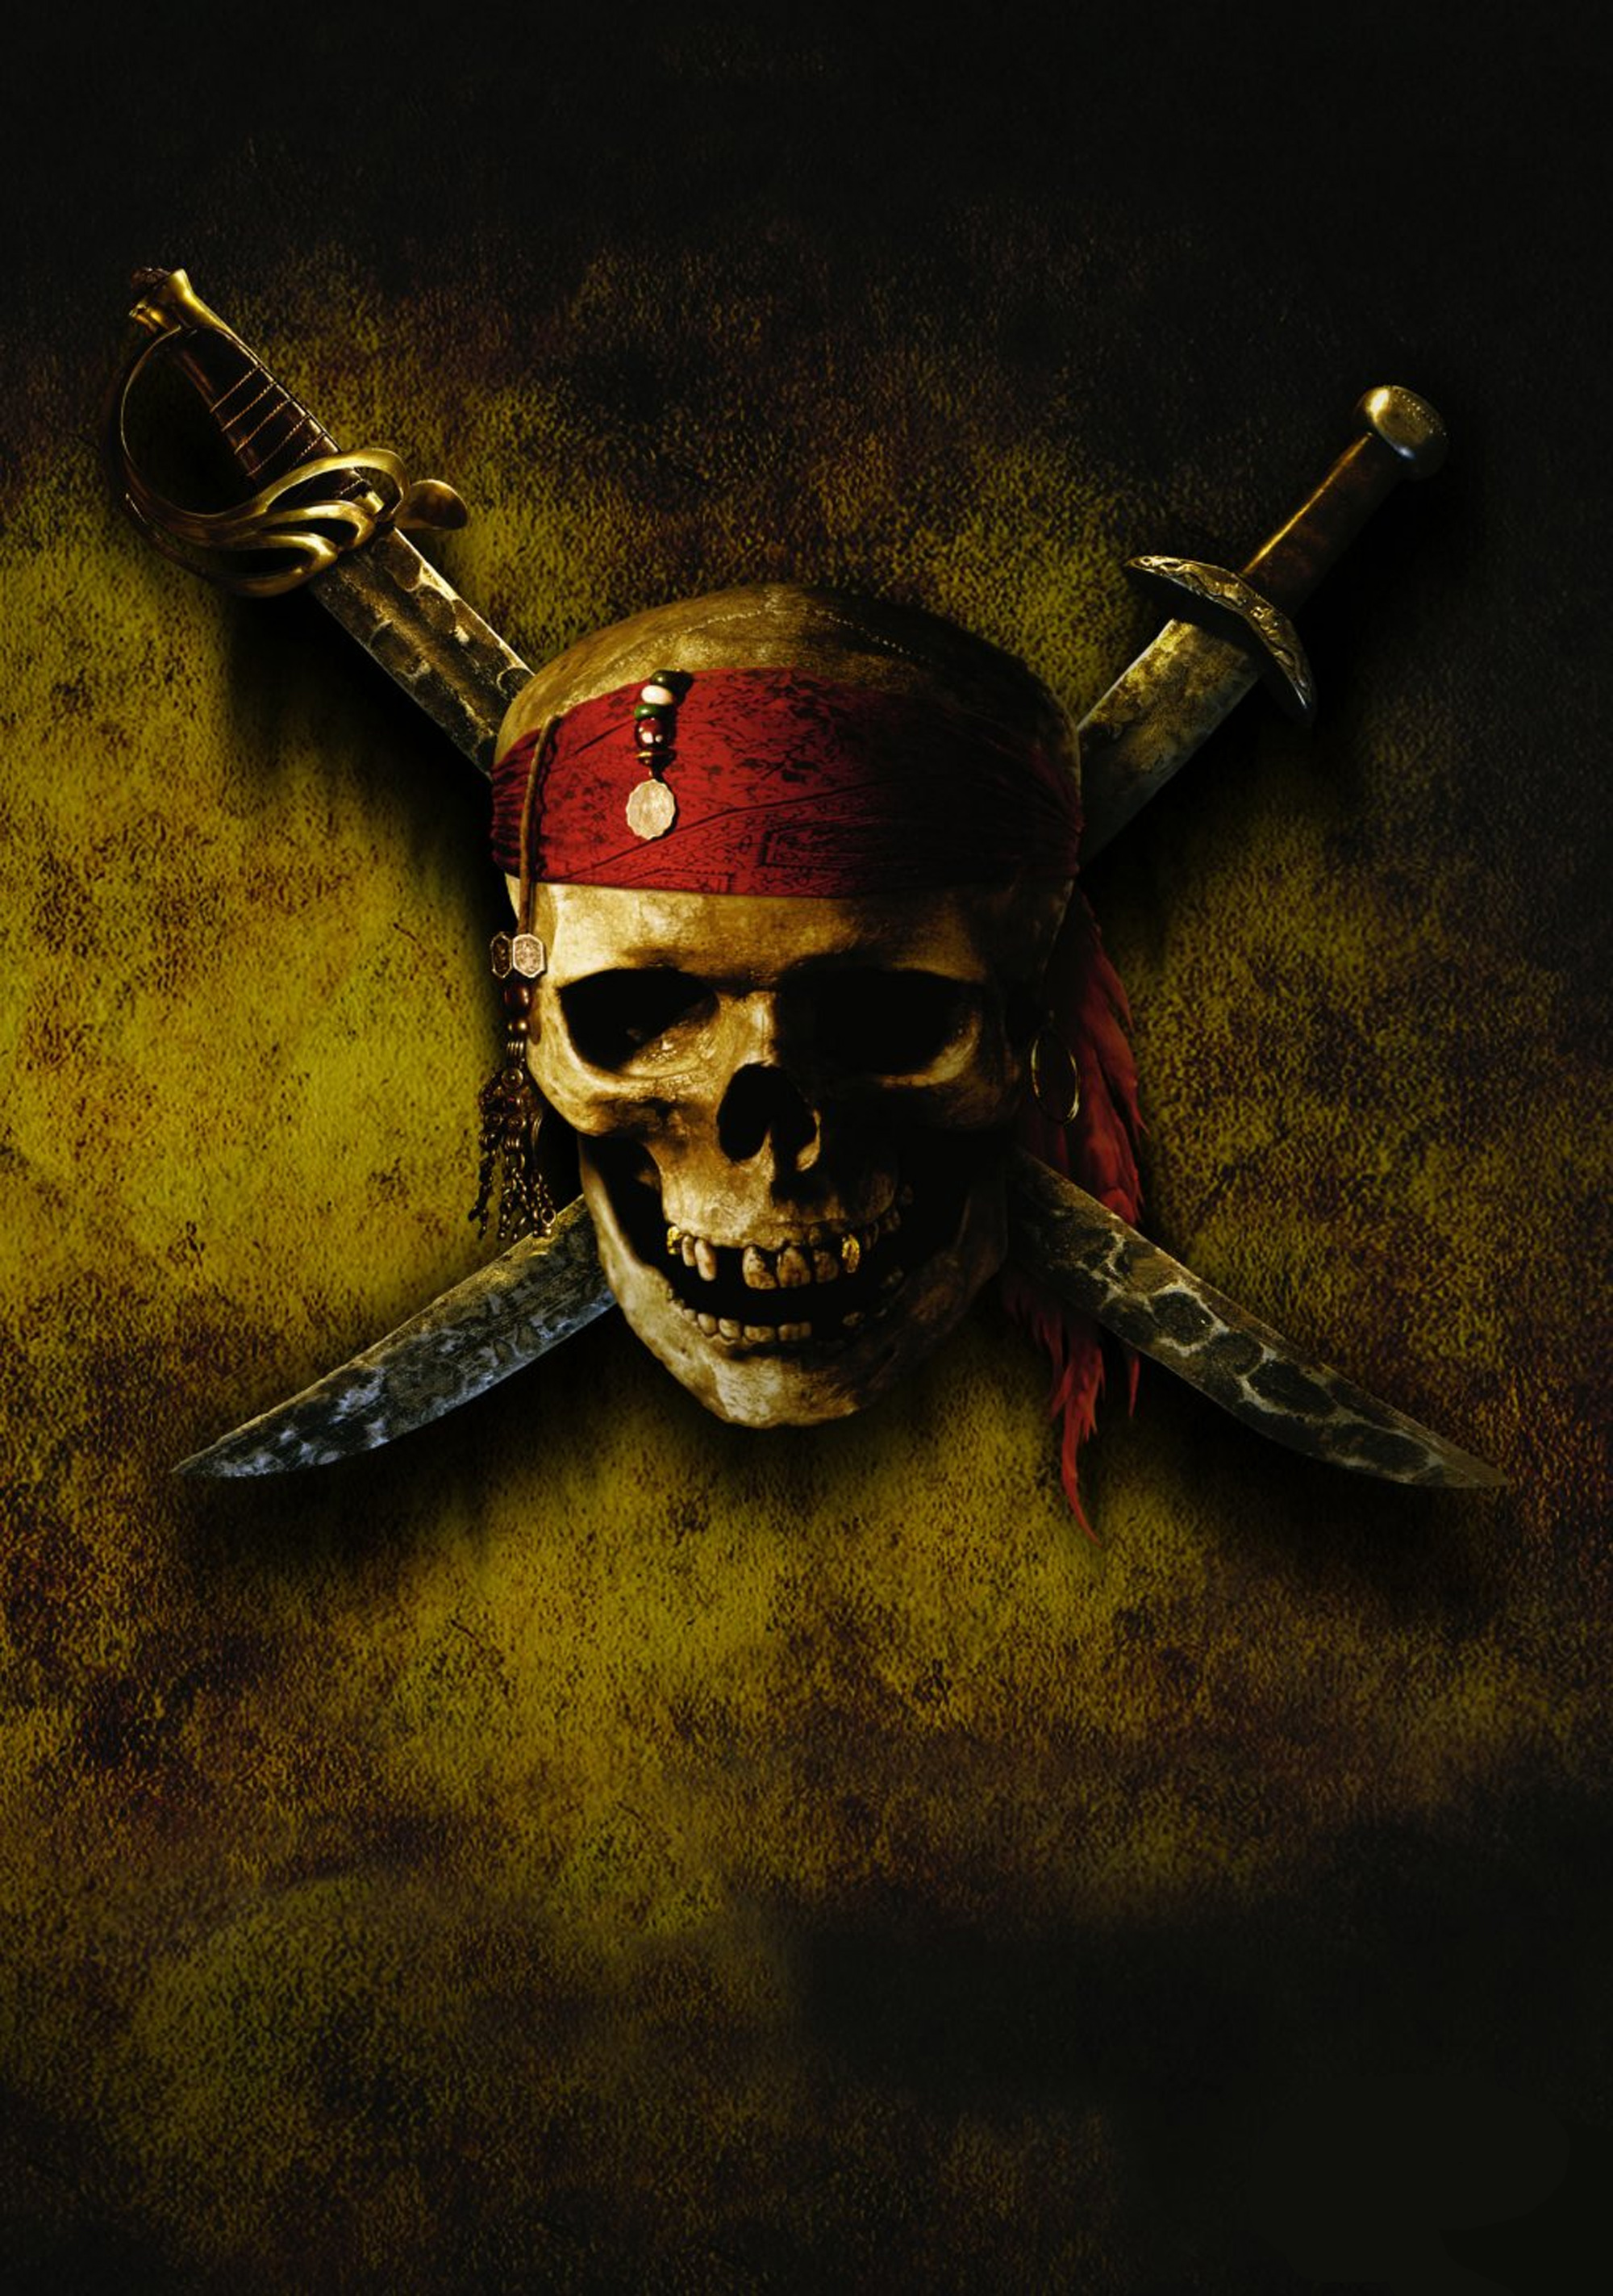 the pirate bay case study essay Identify the key problems or issues in the case,  searching for a safe haven case study read the pirate bay:  essay writing.